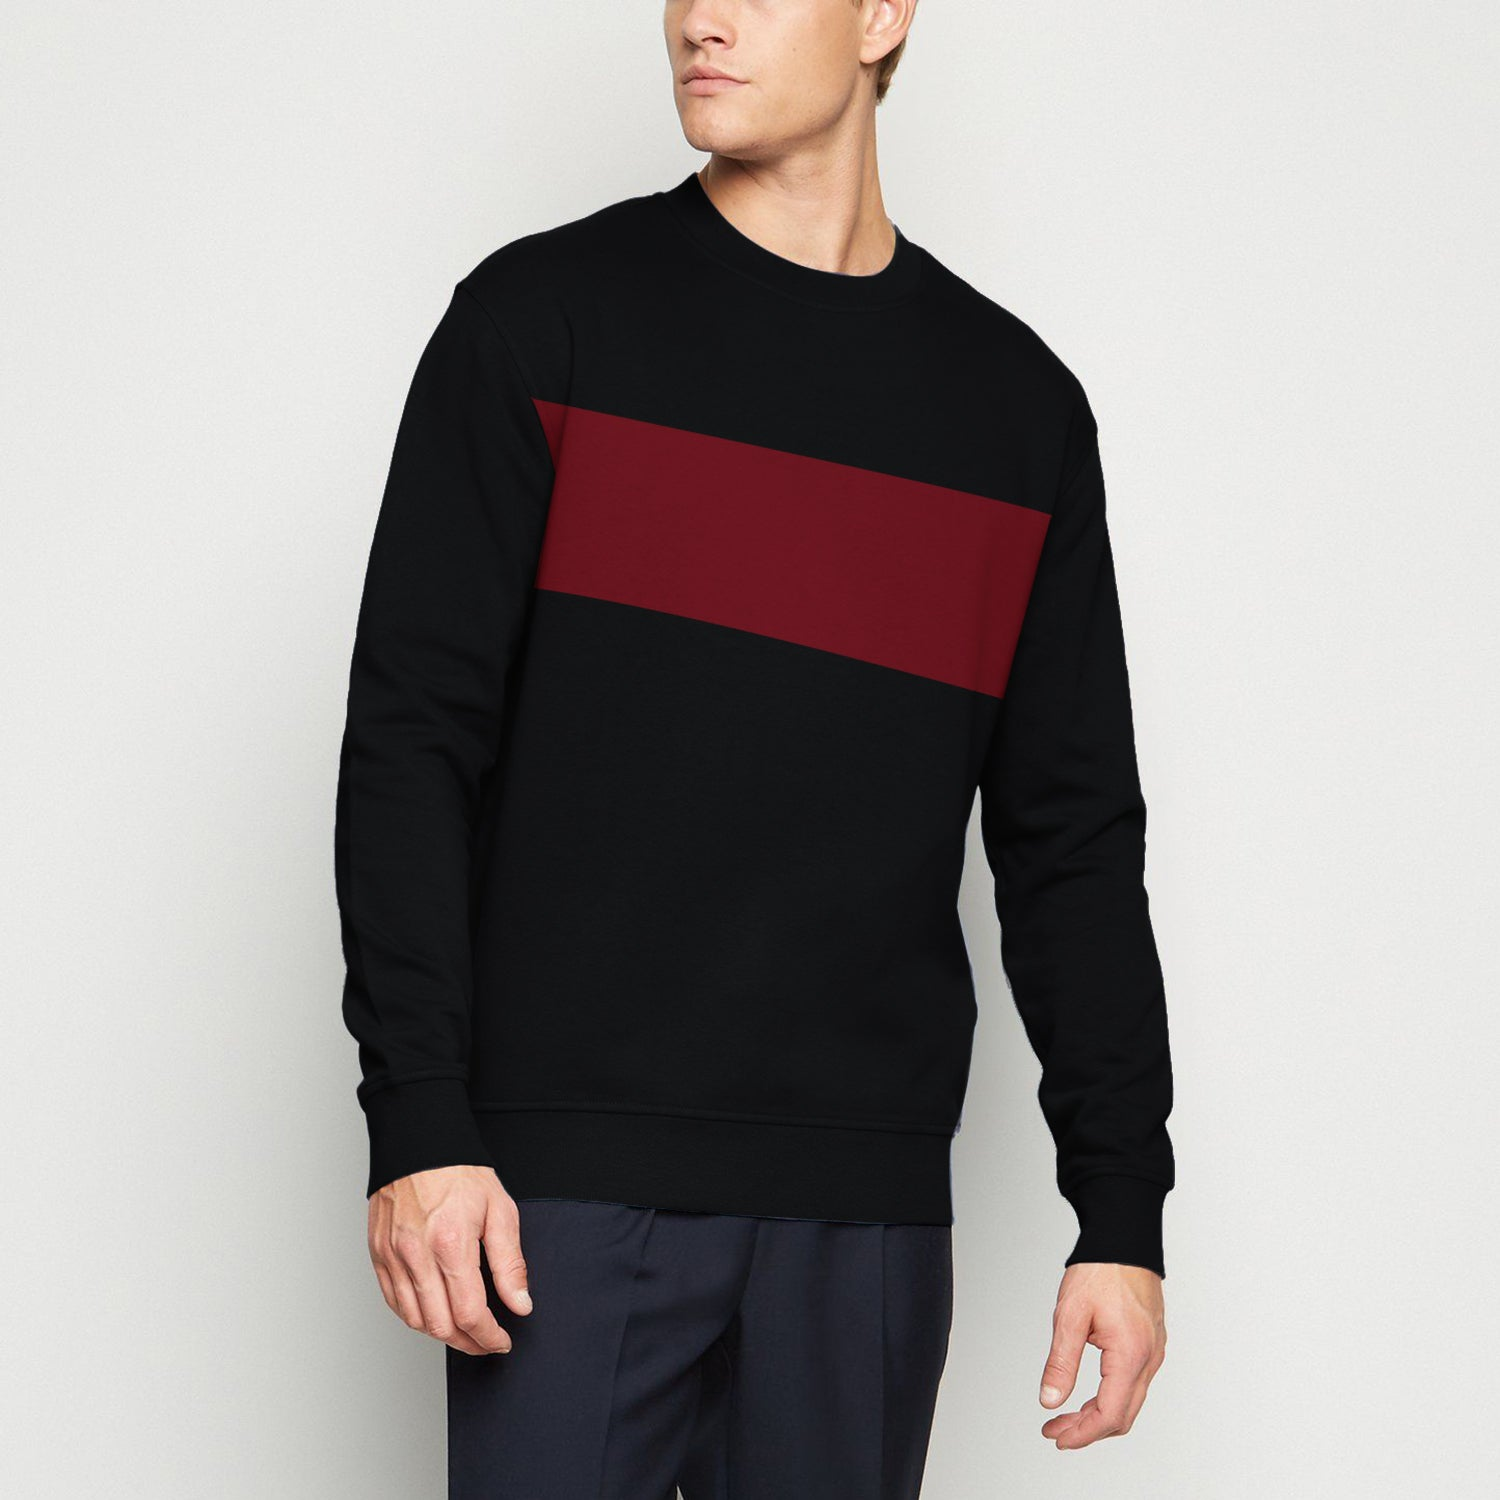 Next Crew Neck Fleece Sweatshirt For Men-Black & Red-SP1022